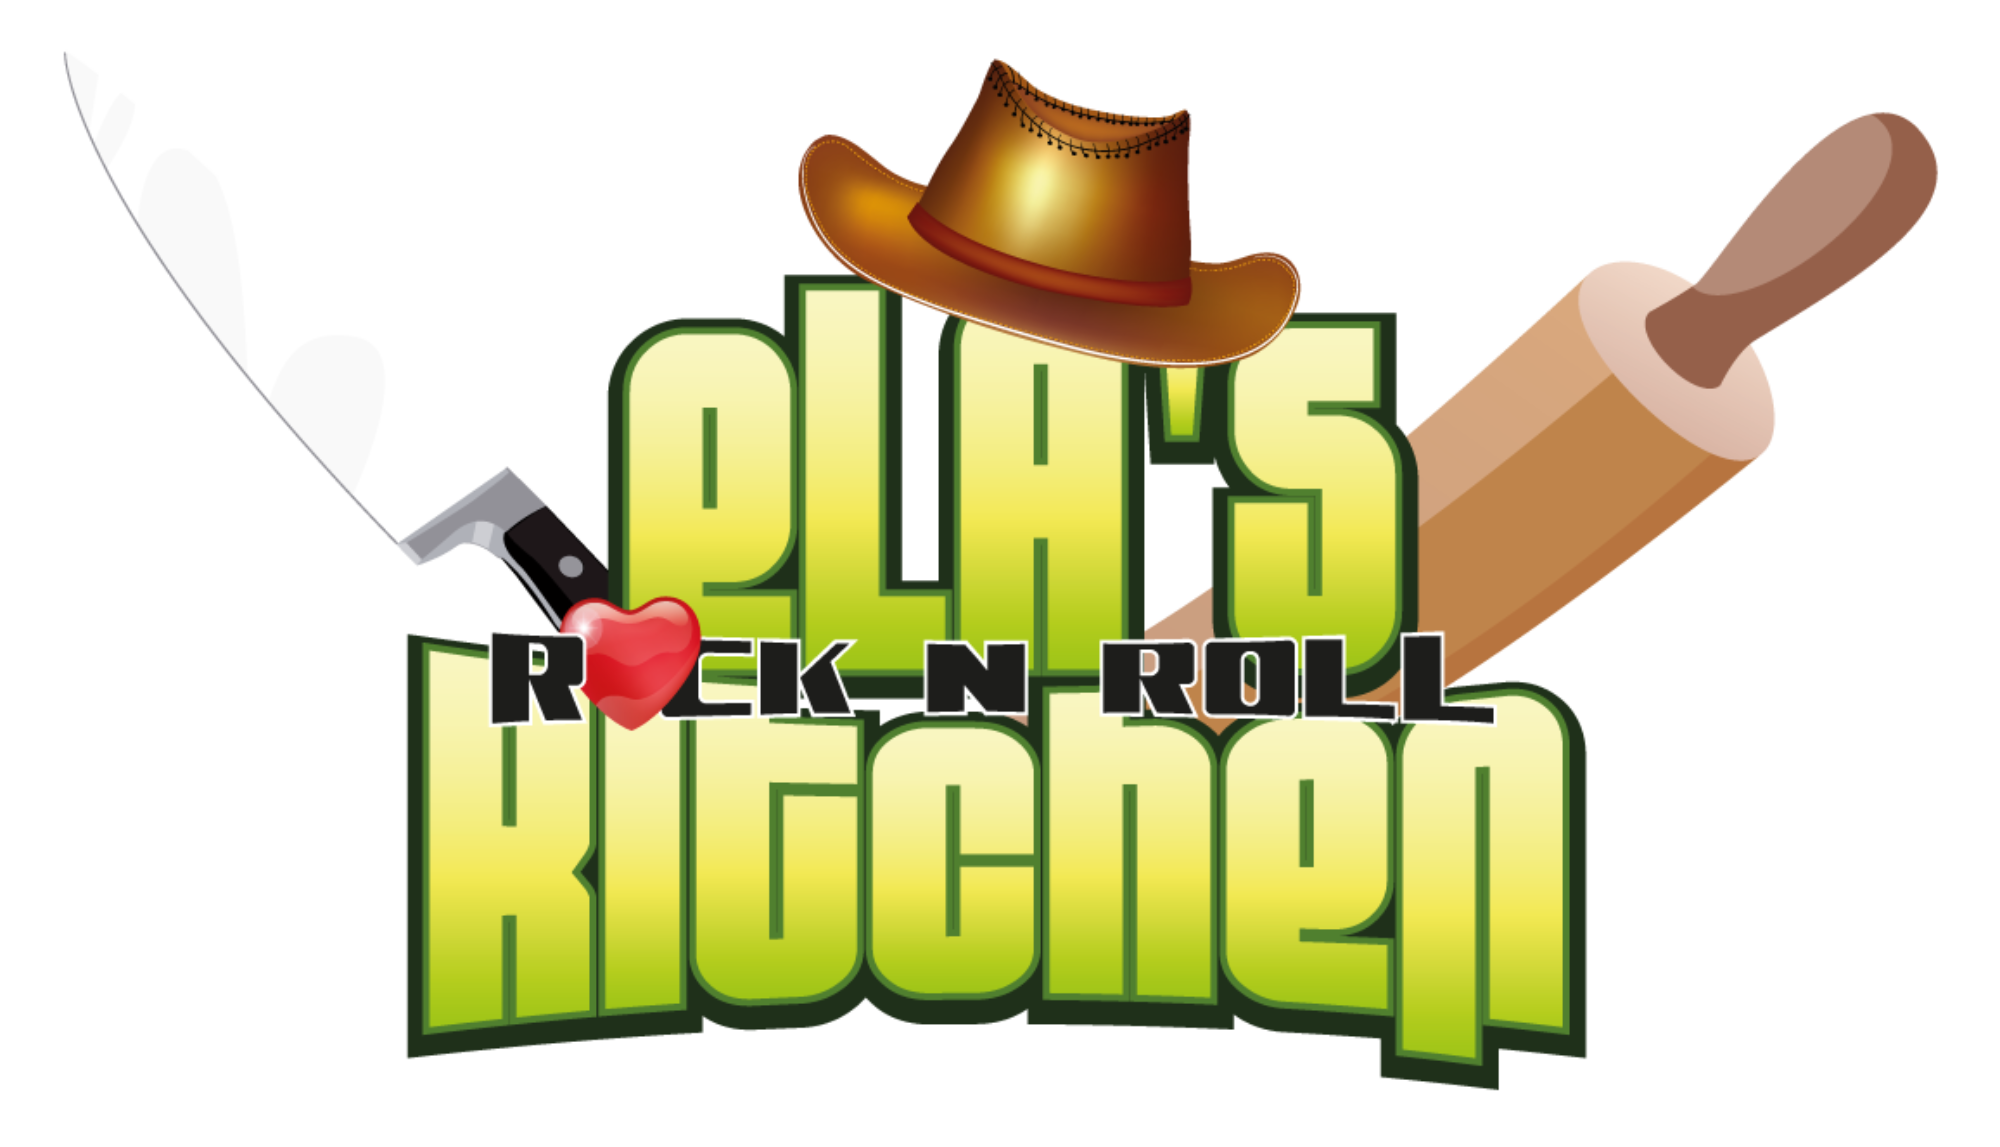 Ela's RocknRoll Kitchen